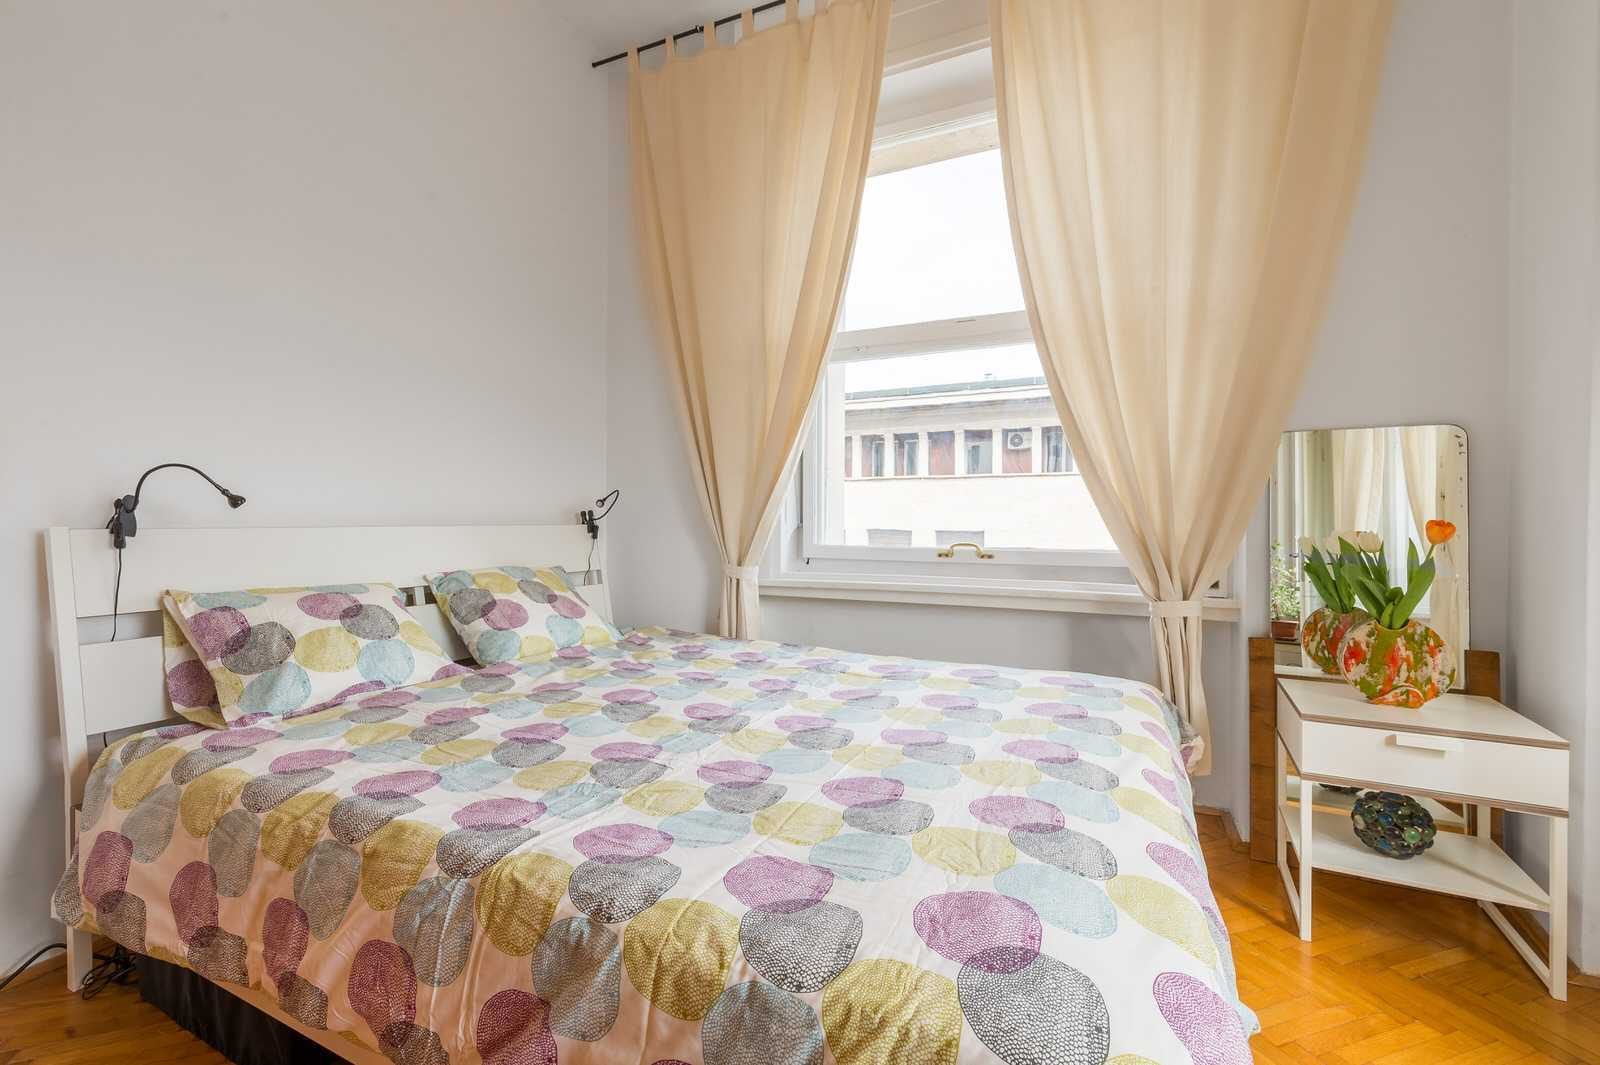 The apartment features a queen size bed.